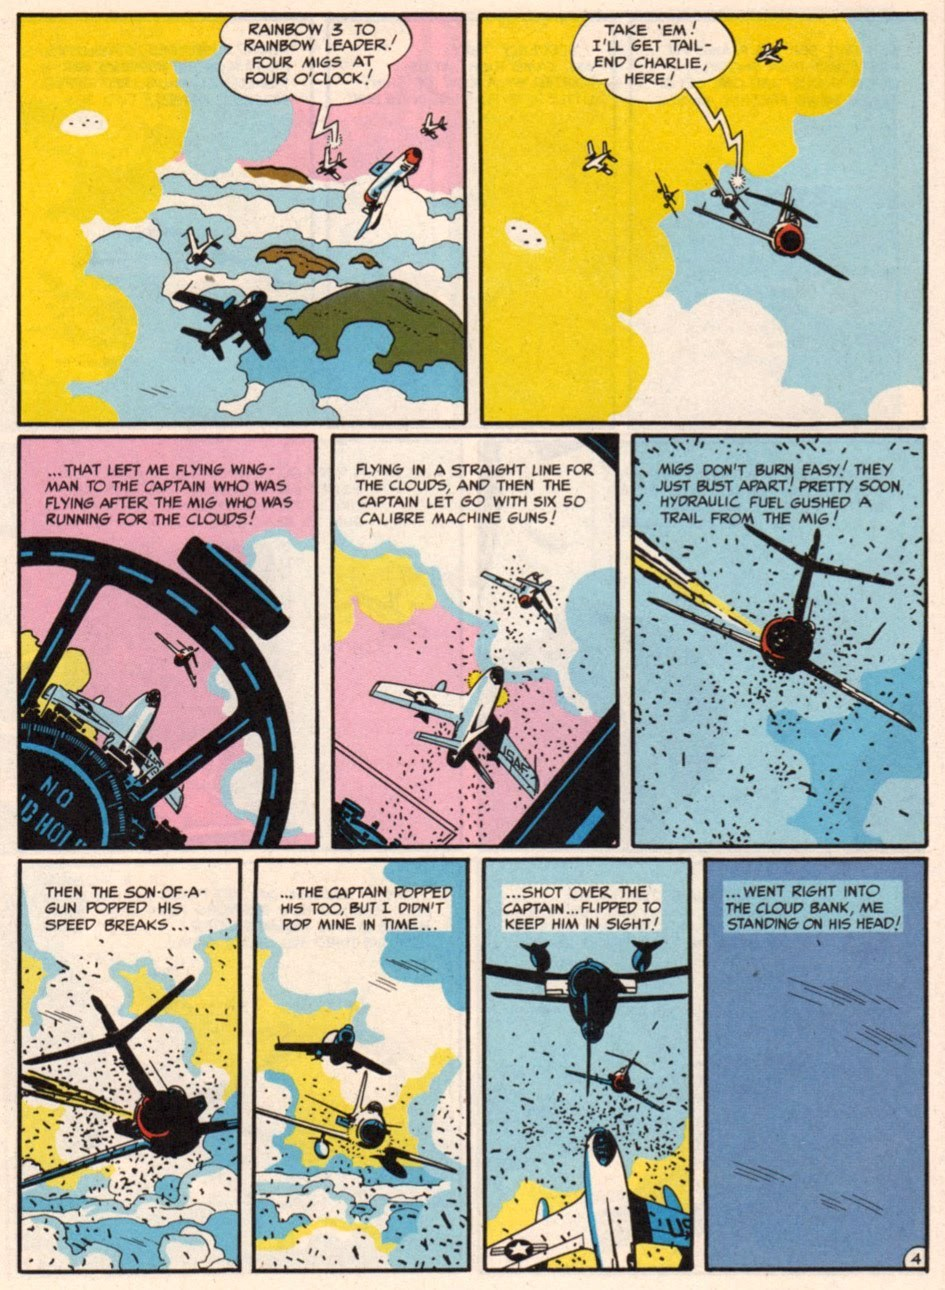 F86 Sabre Jet - Harvey Kurtzman and Alex Toth page 4